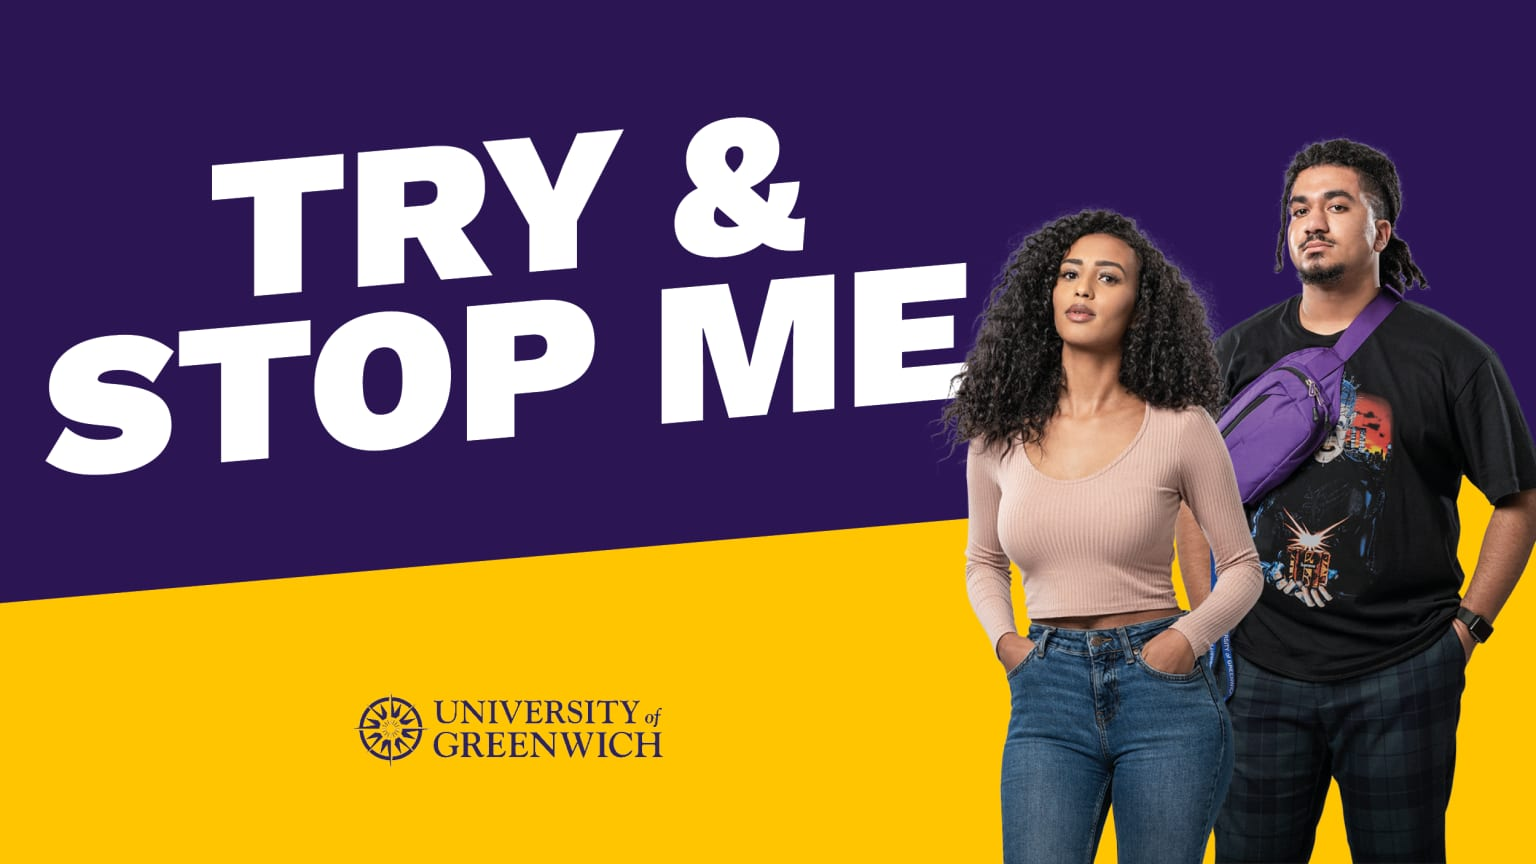 University of Greenwich Campaign